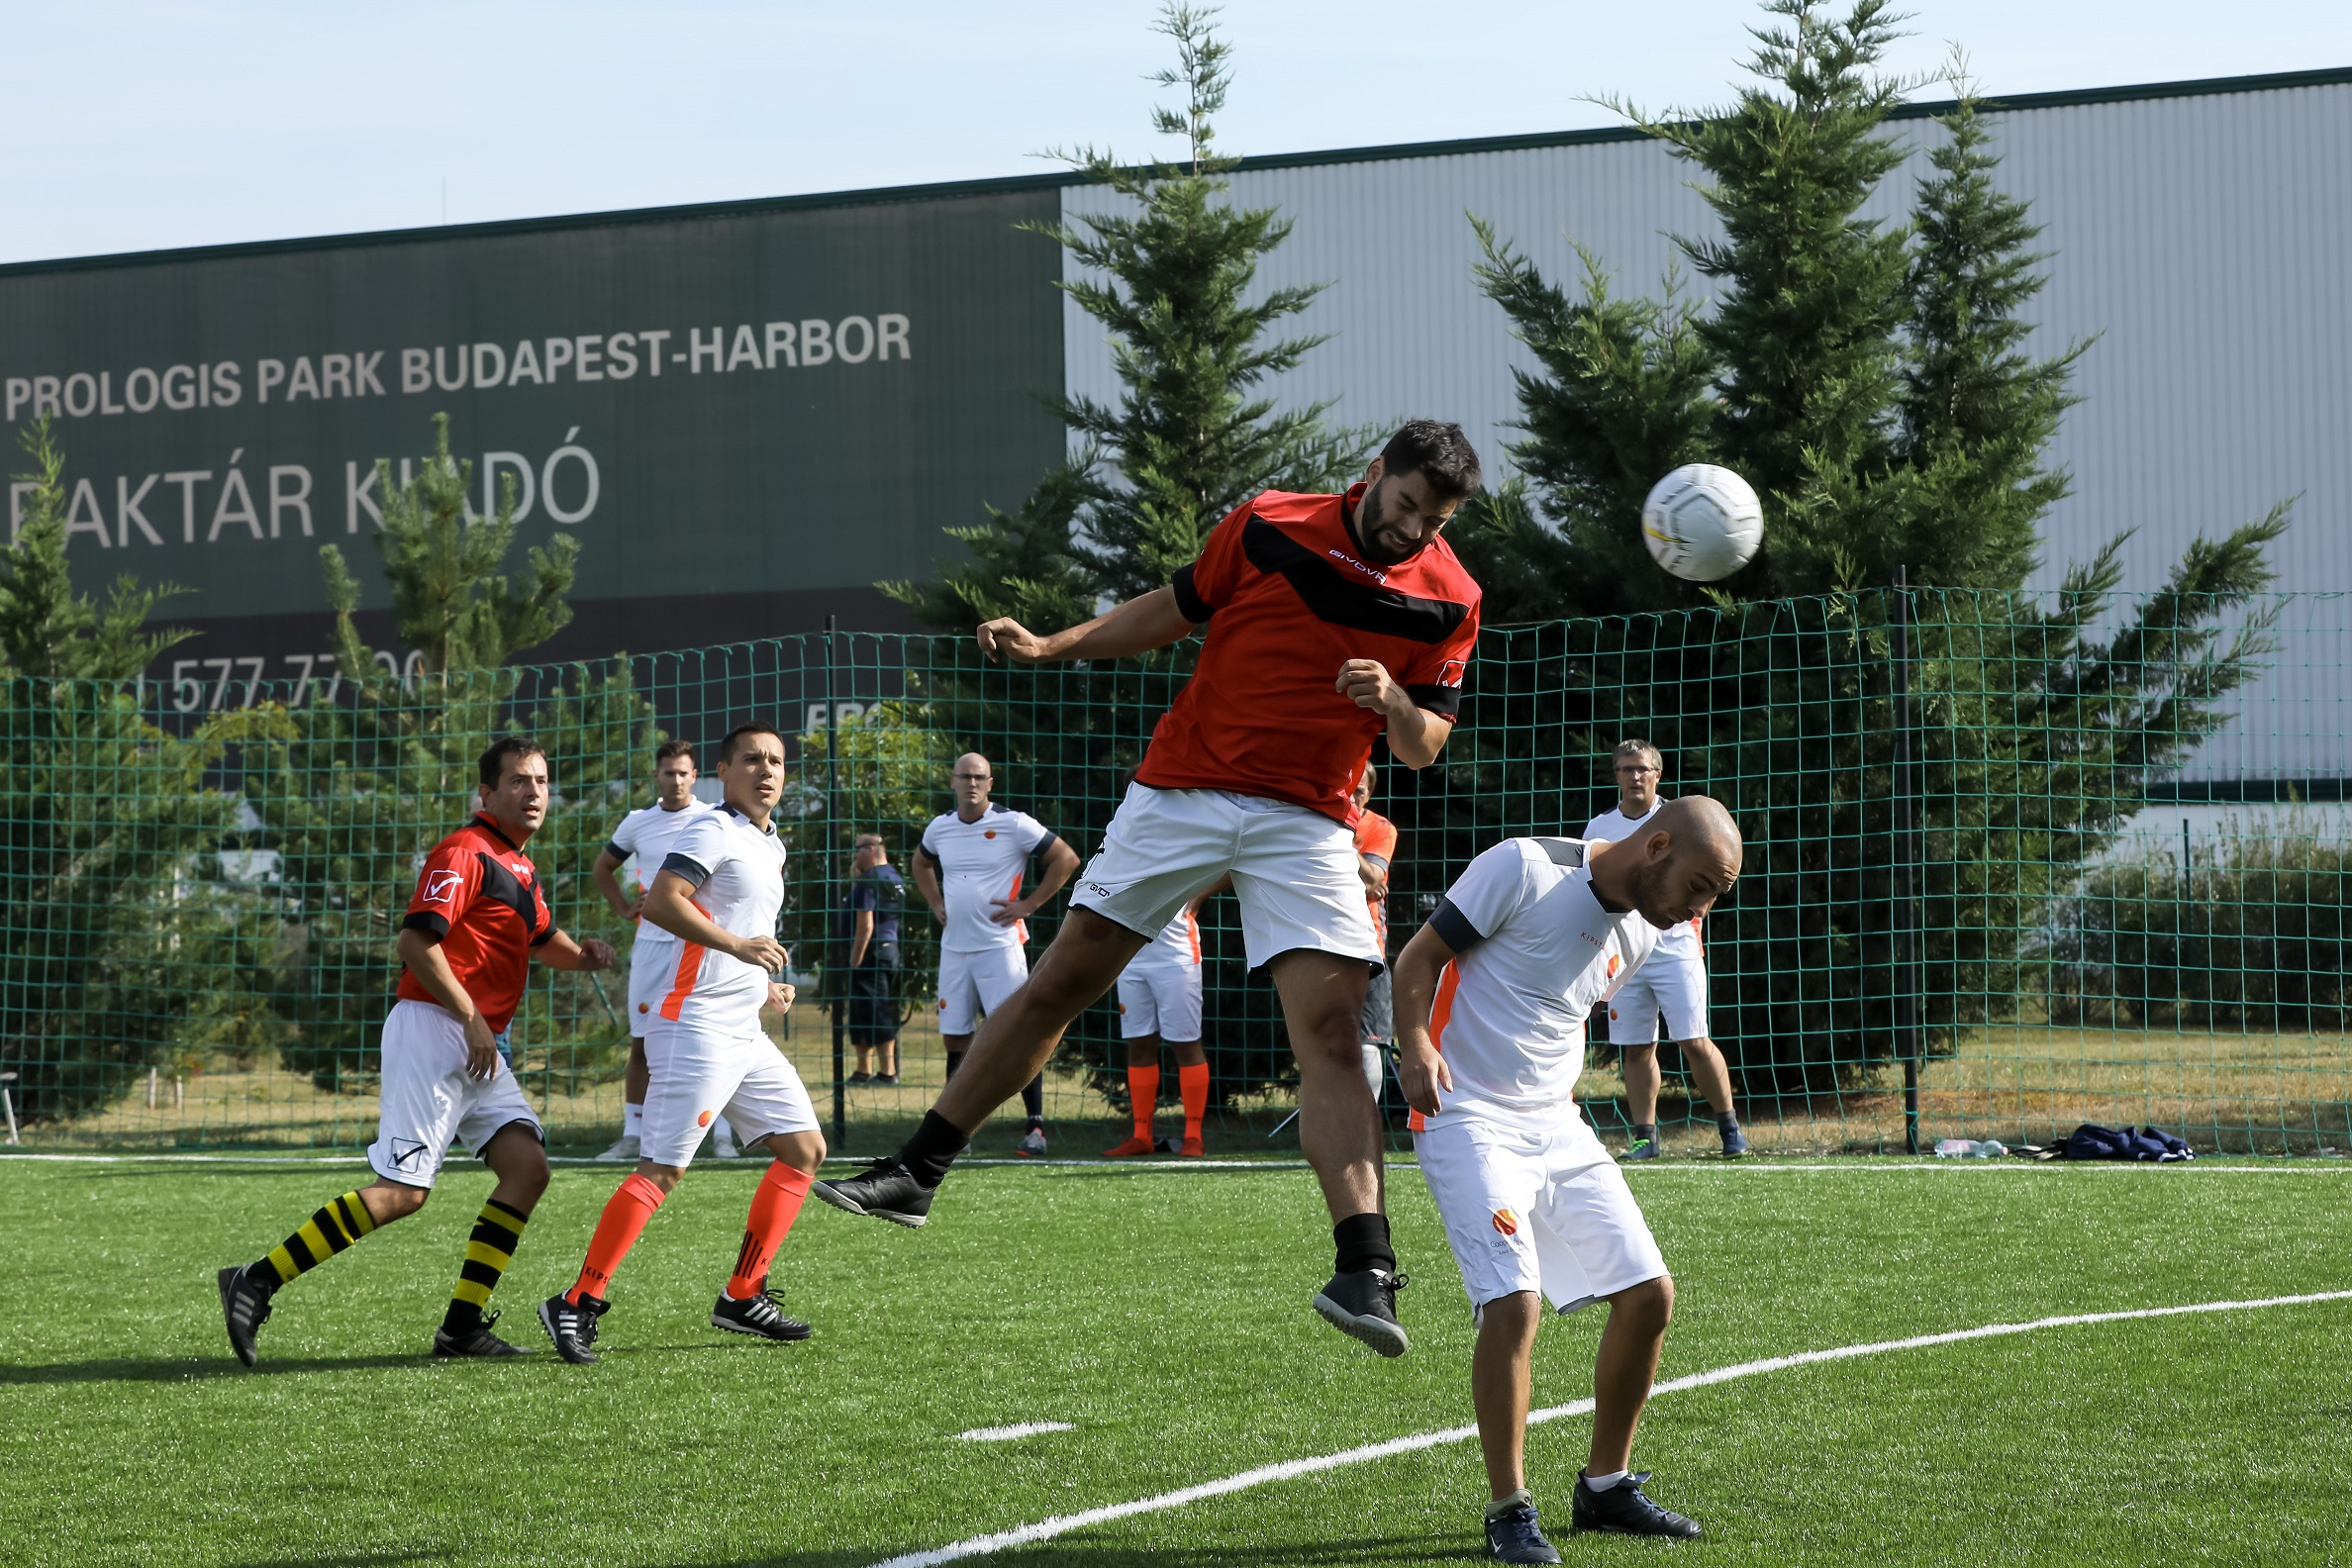 6th Prologis Budapest Football Games